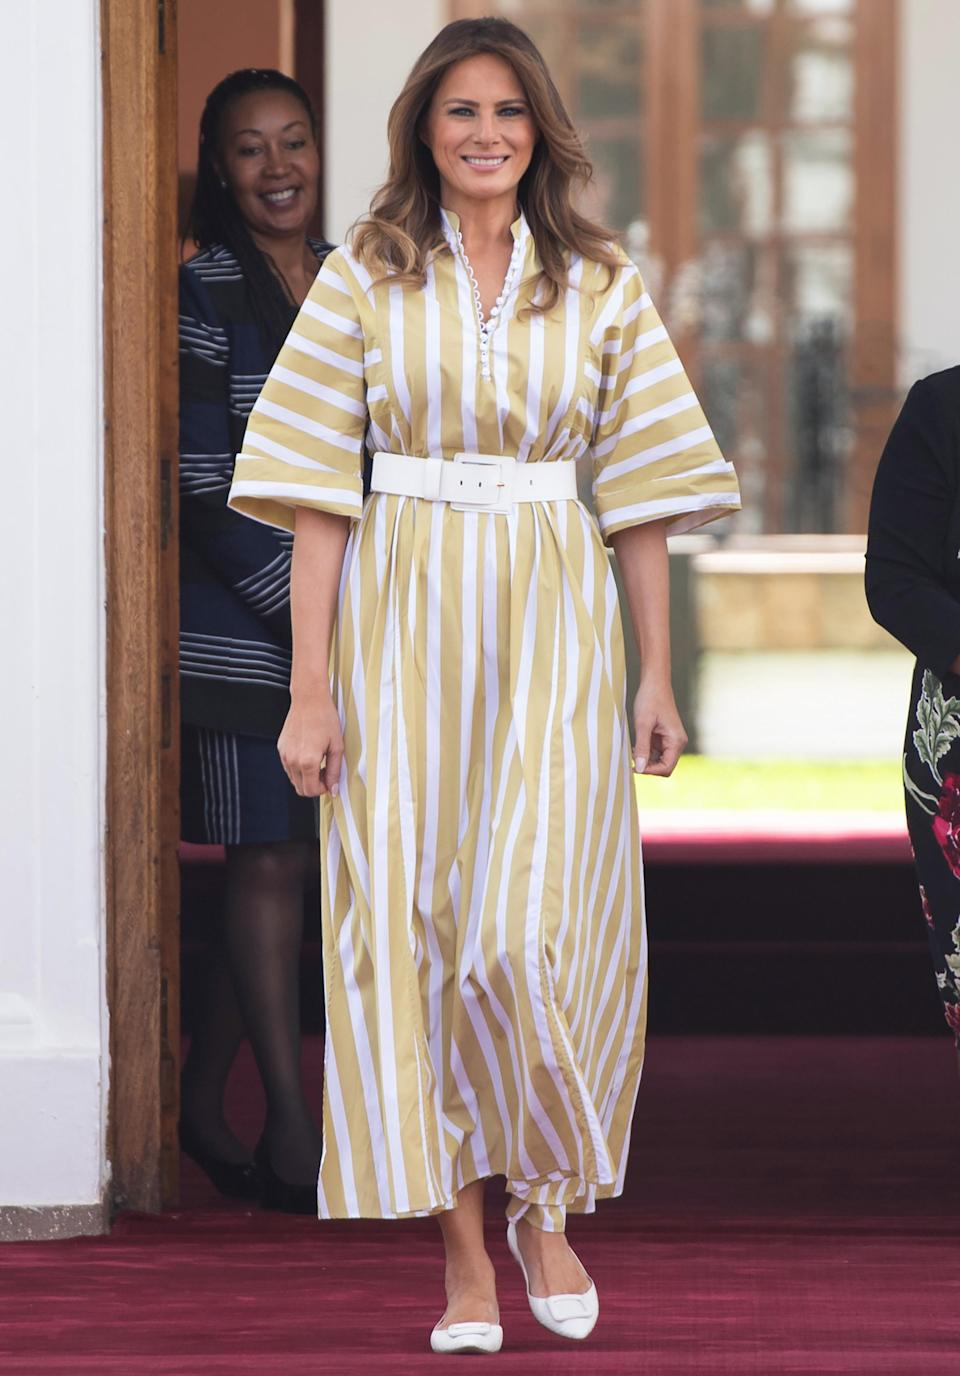 Wearing a muted yellow and white striped dress with a matching belt and flats, the First Lady covered up while meeting with teh First Lady of Kenya, Margaret Kenyatta. [Photo: Getty]